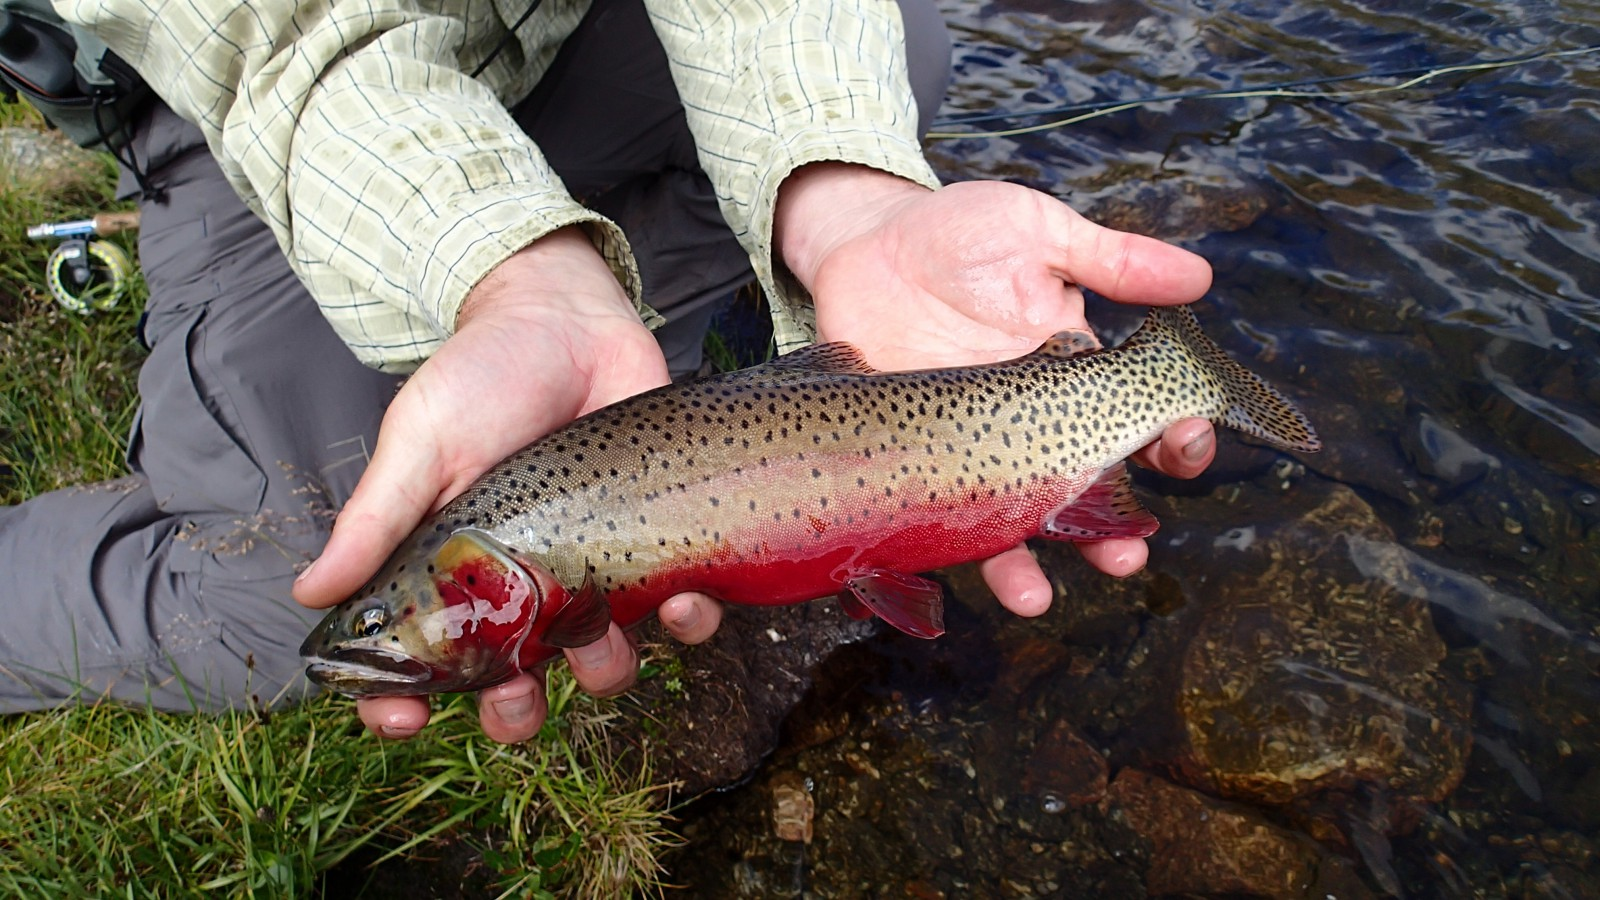 Rio Grande Cutthroat Trout. Photo provided by Kevin Terry.